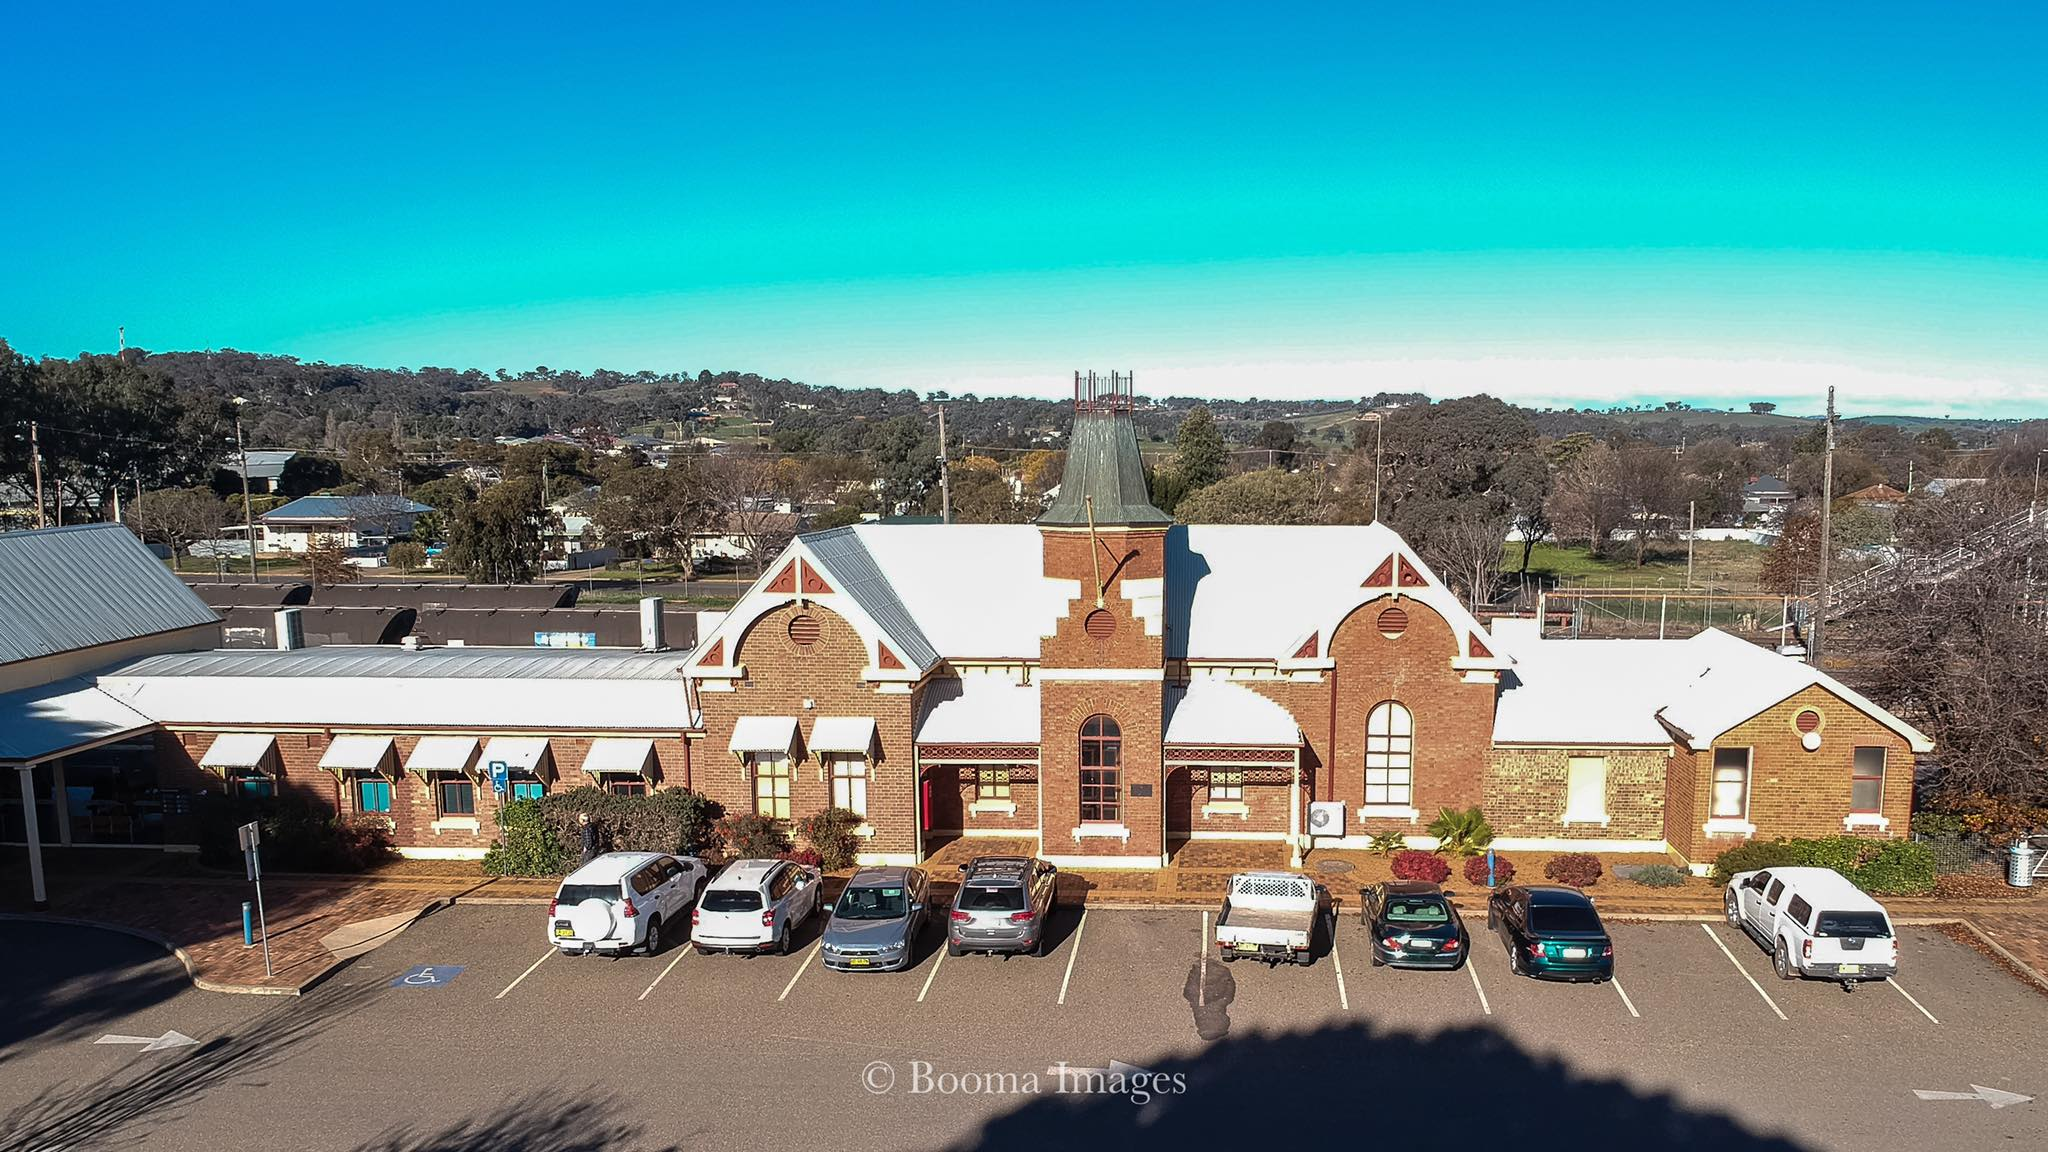 Sky view of Cootamundra Railway Station  Photo Credit:   Anthony lynch, Booma Images